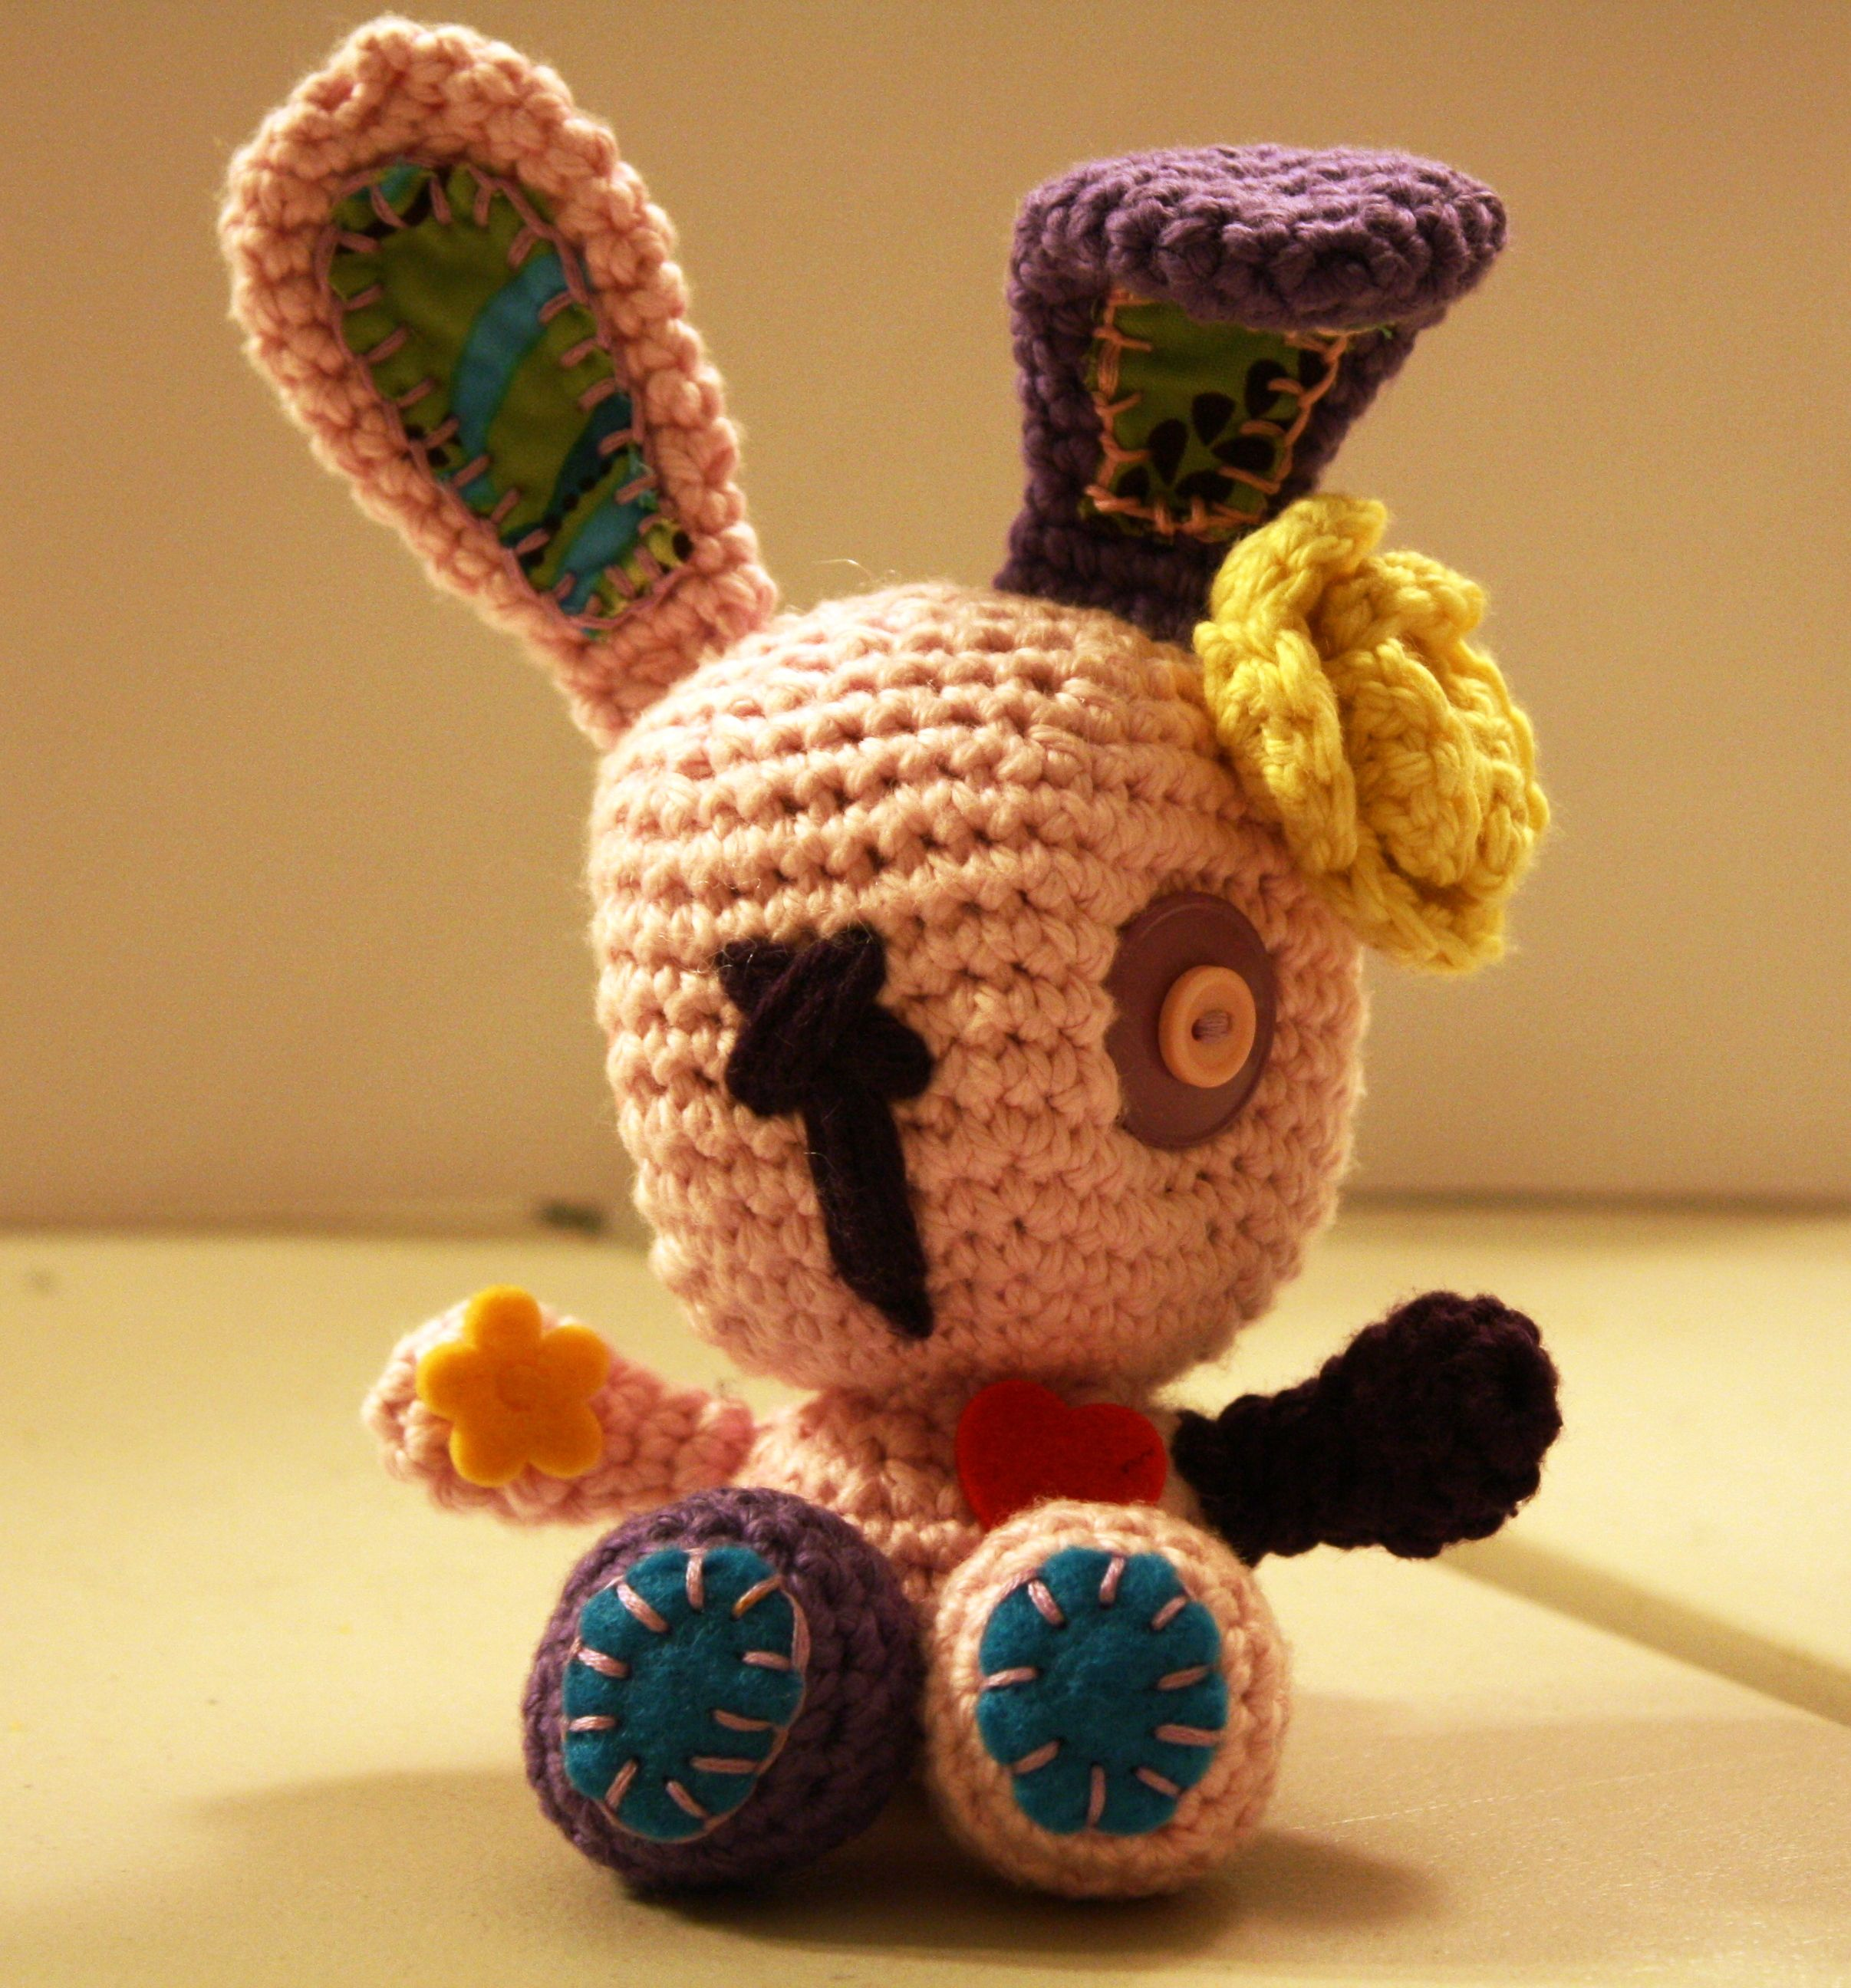 Crocheted bunny I made for my niece at Easter.  #crochet